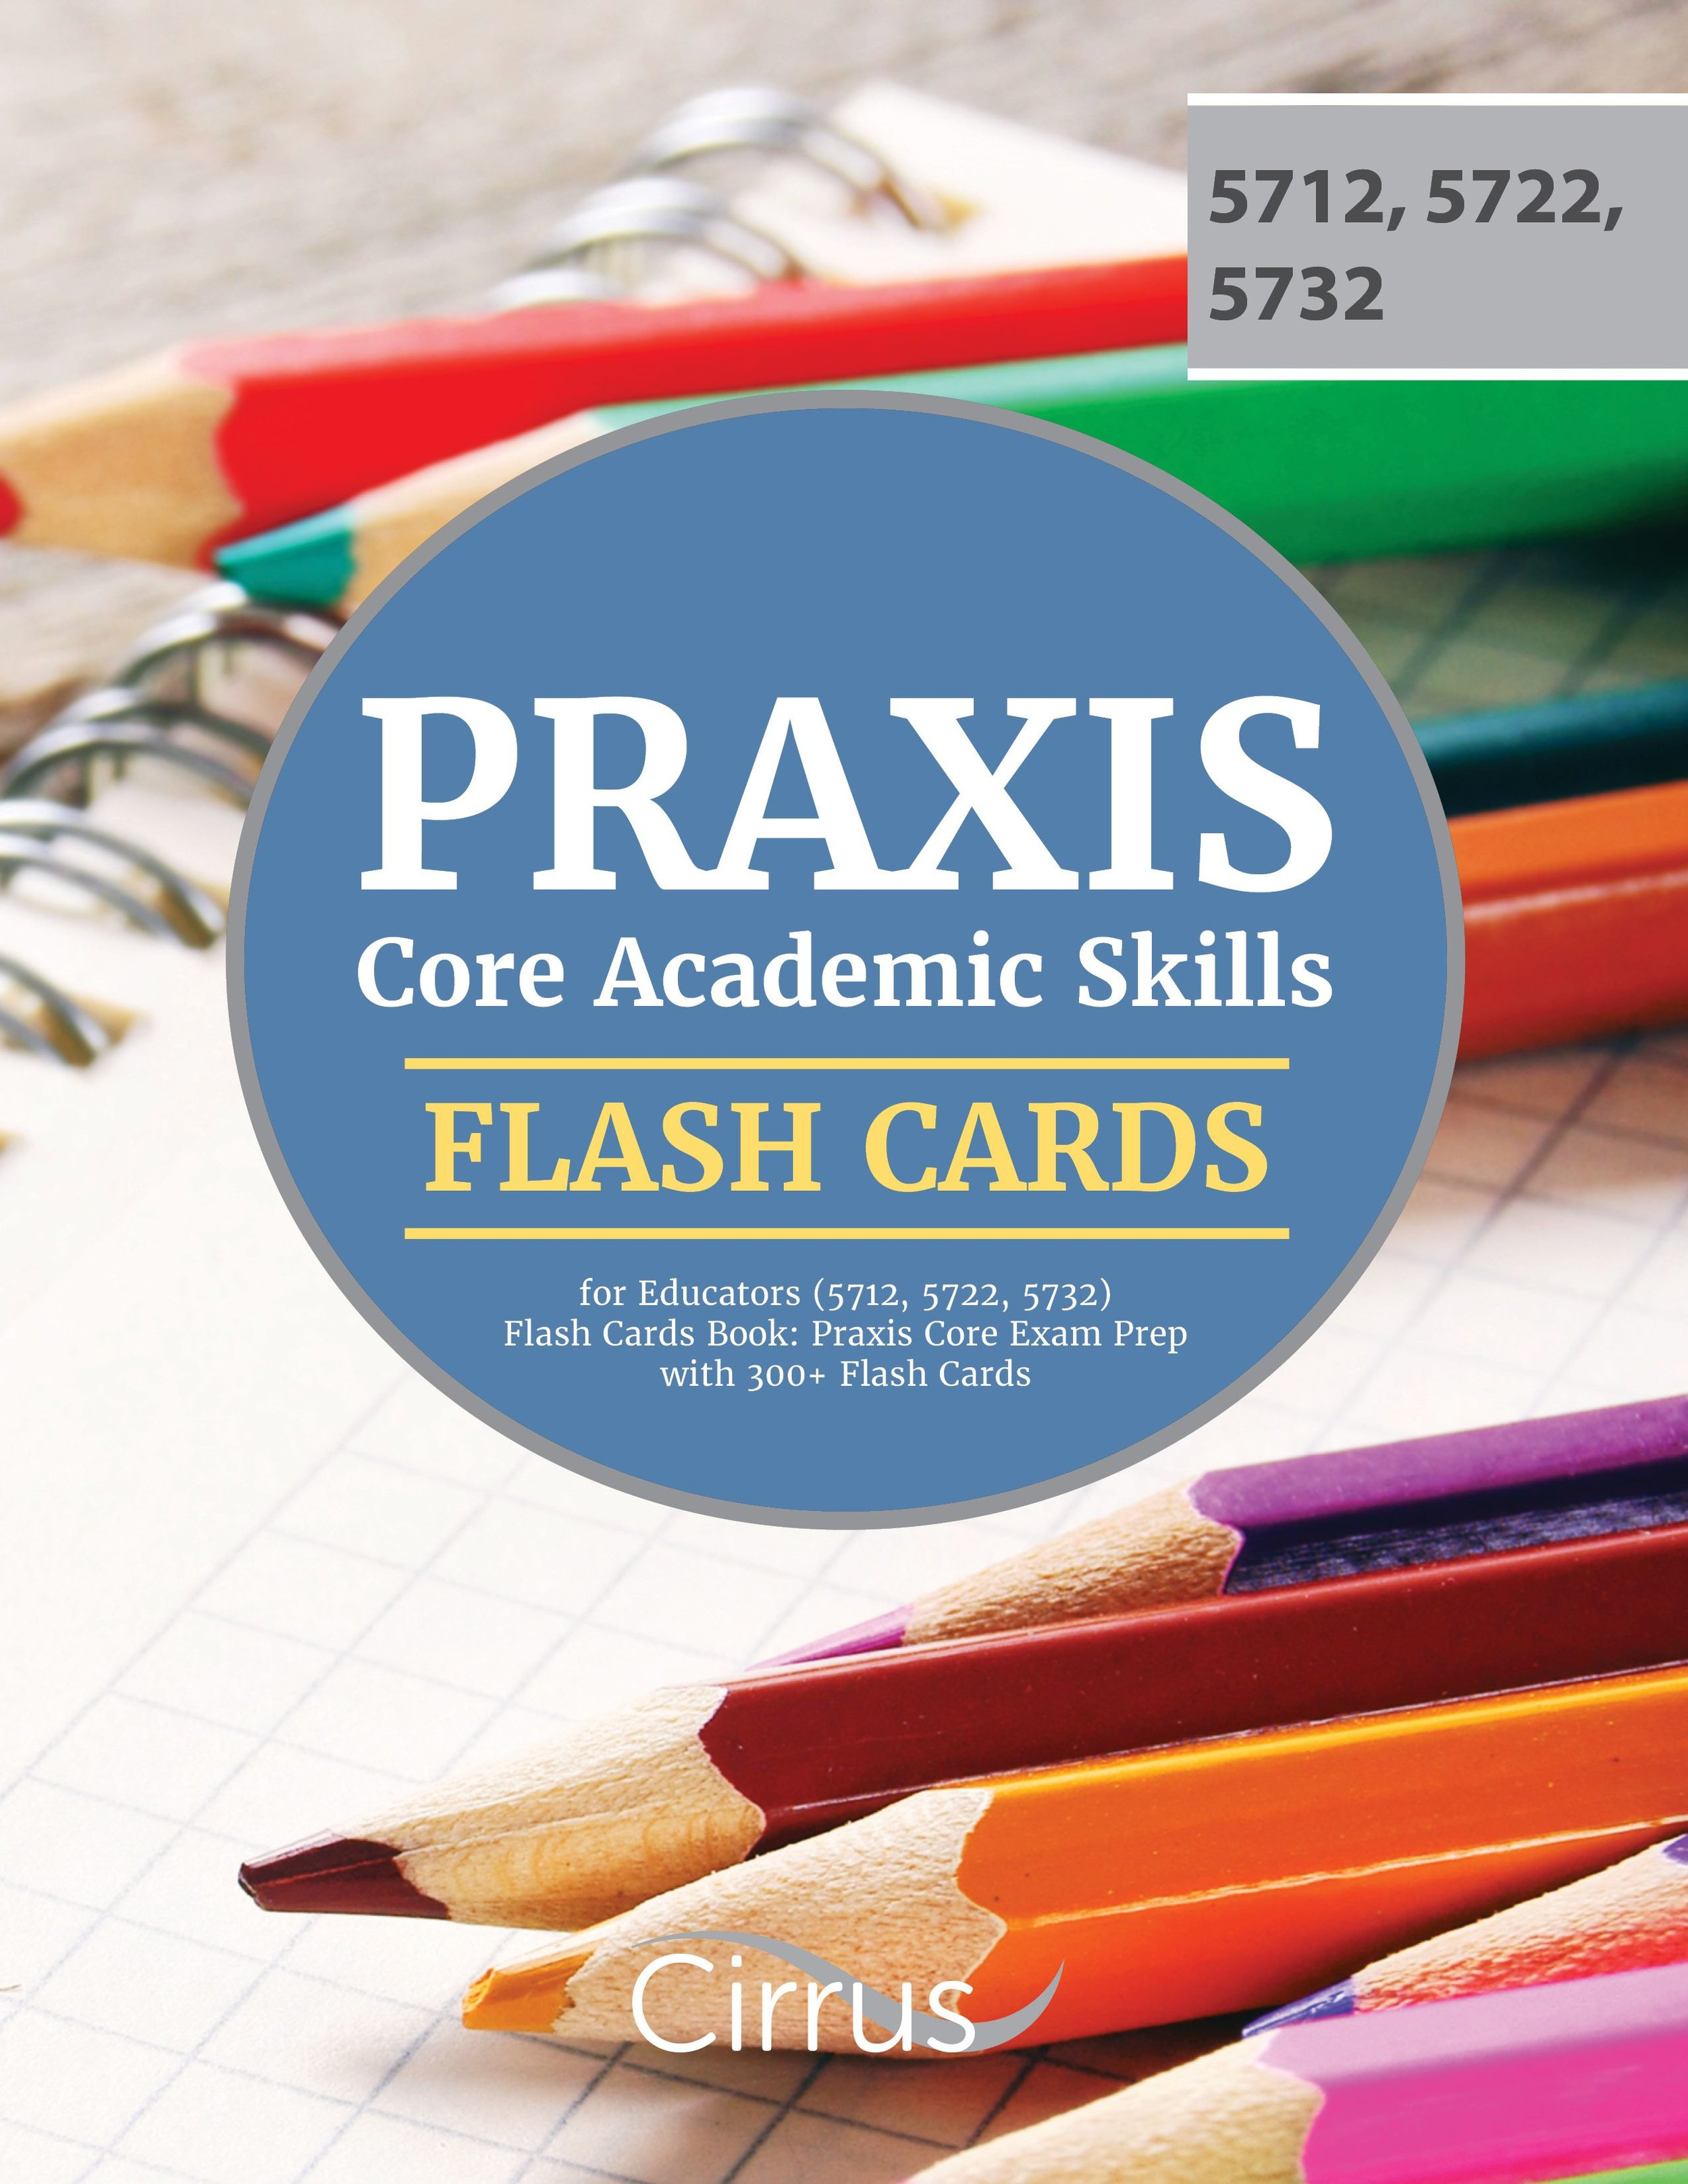 Praxis Core Academic Skills for Educators Flash Cards Book (5712, 5722, 5732)